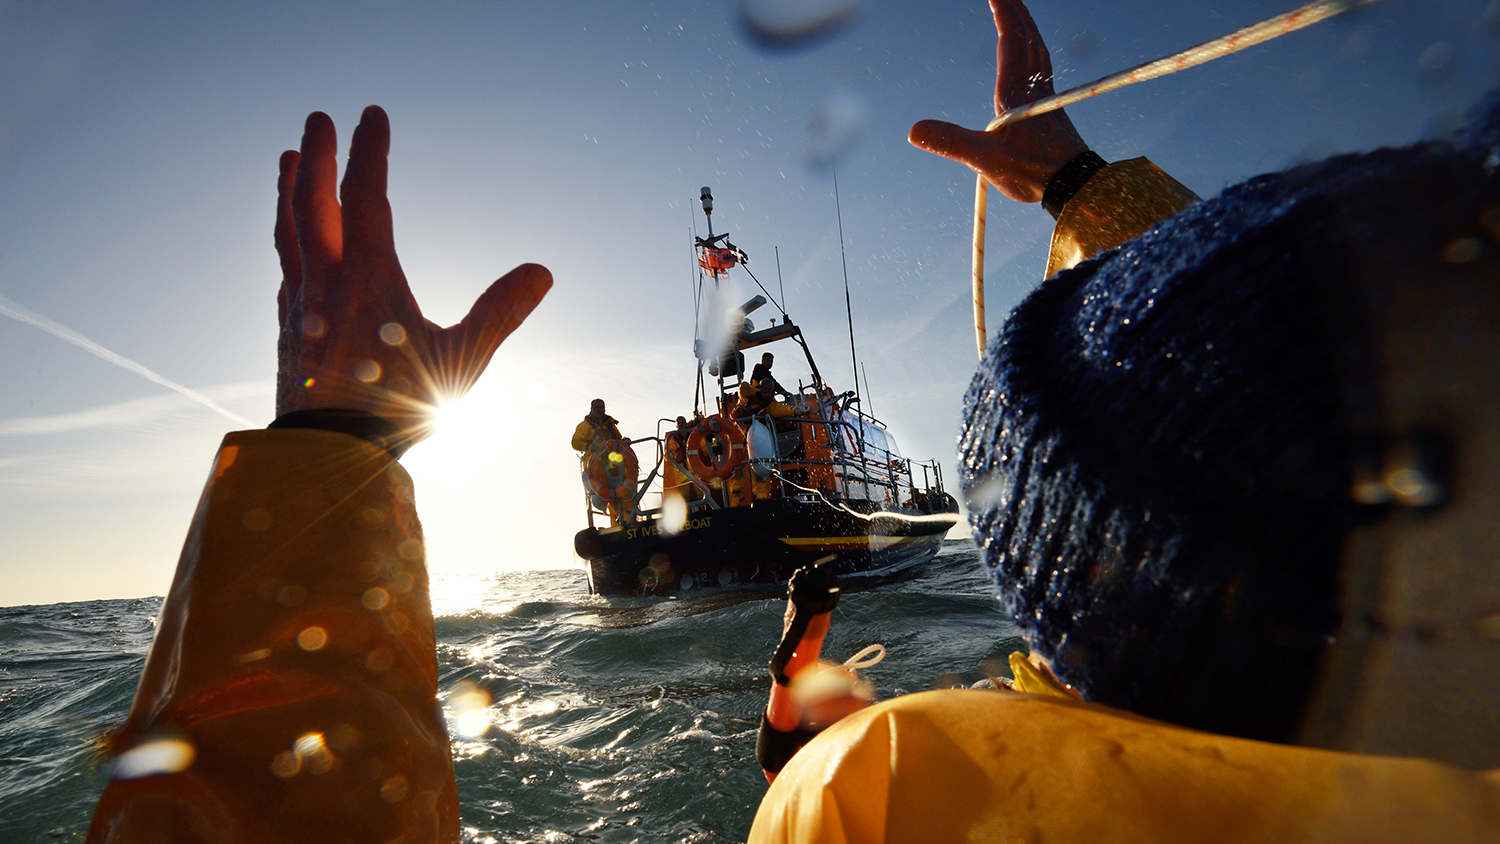 St Ives RNLI lifeboat crew throwing rope to fisherman in the water